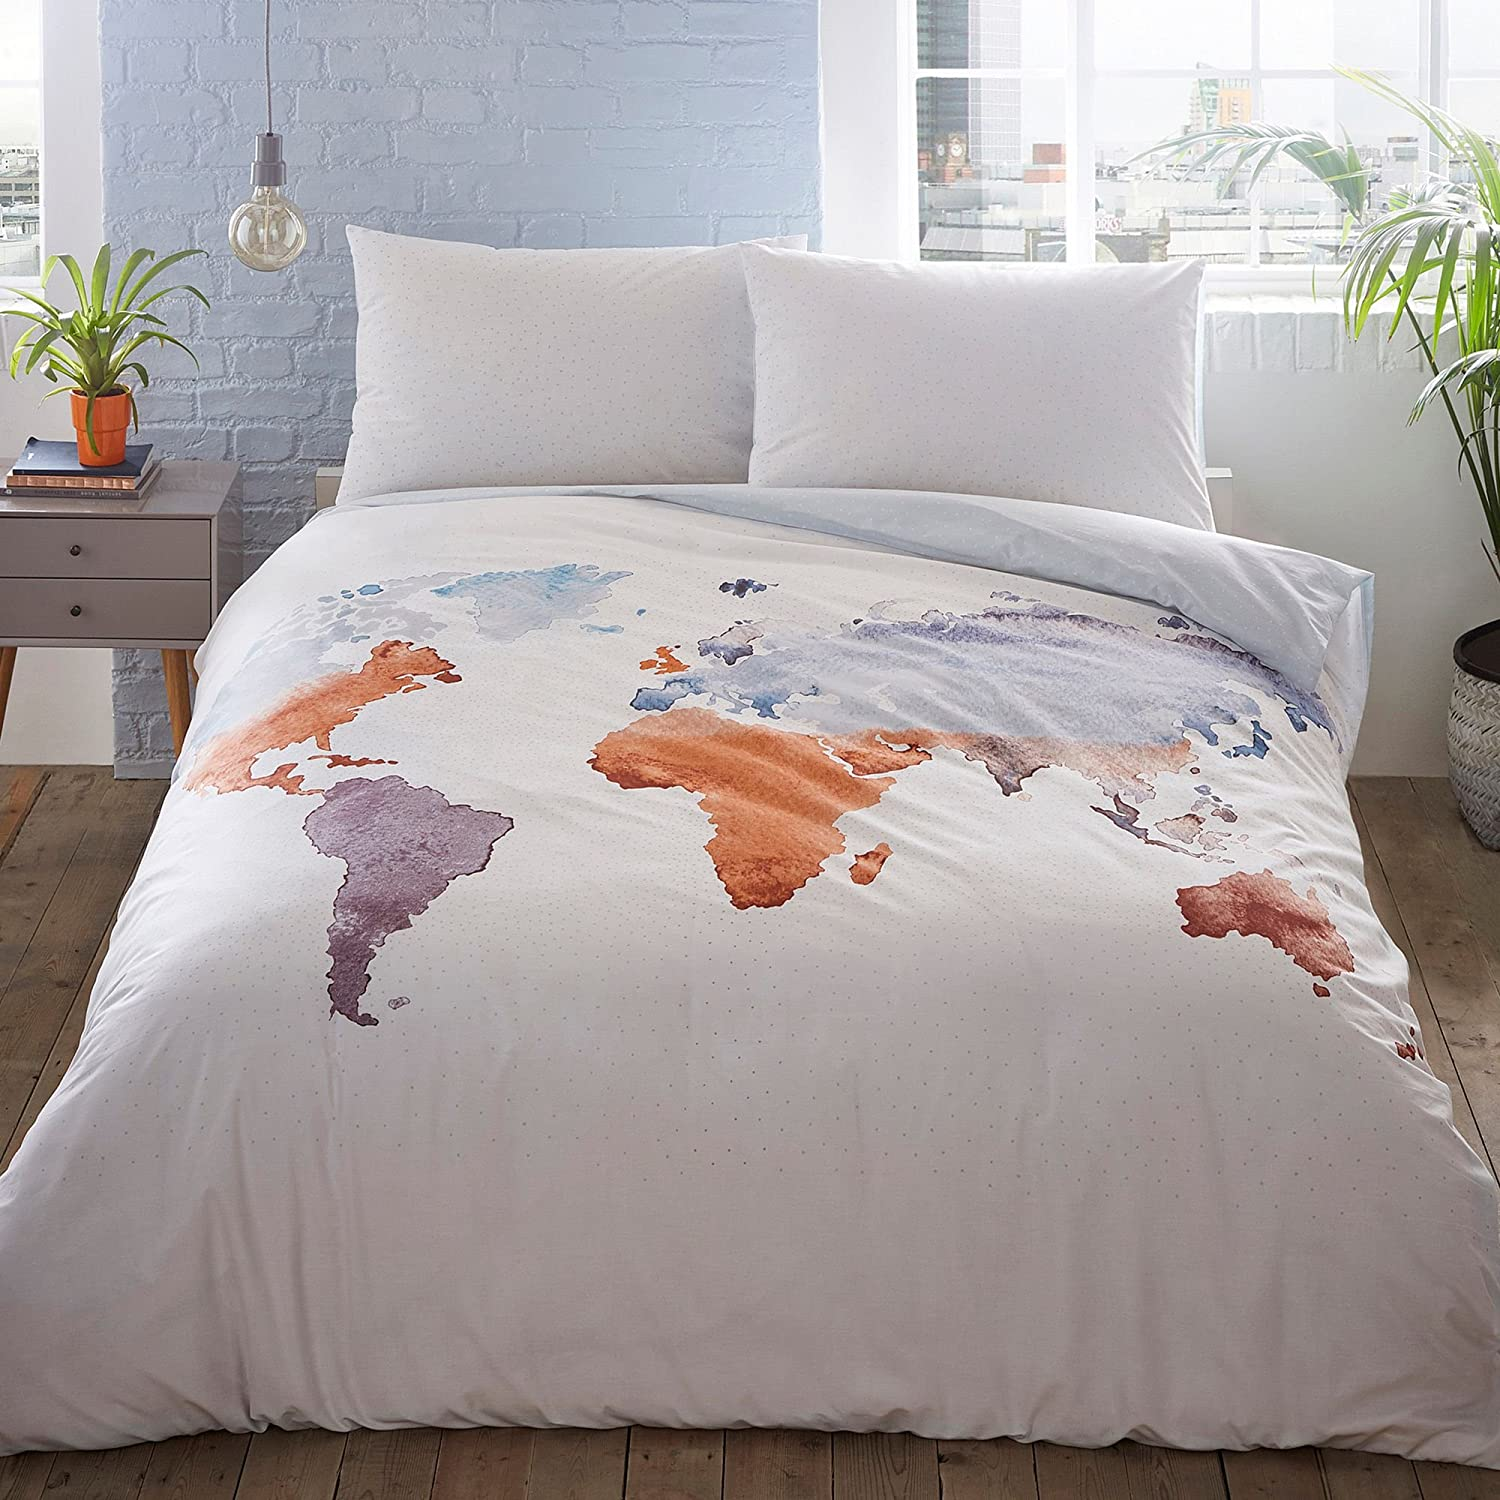 Debenhams Home Collection Basics White 'Watercolour Map' Bedding Set Double